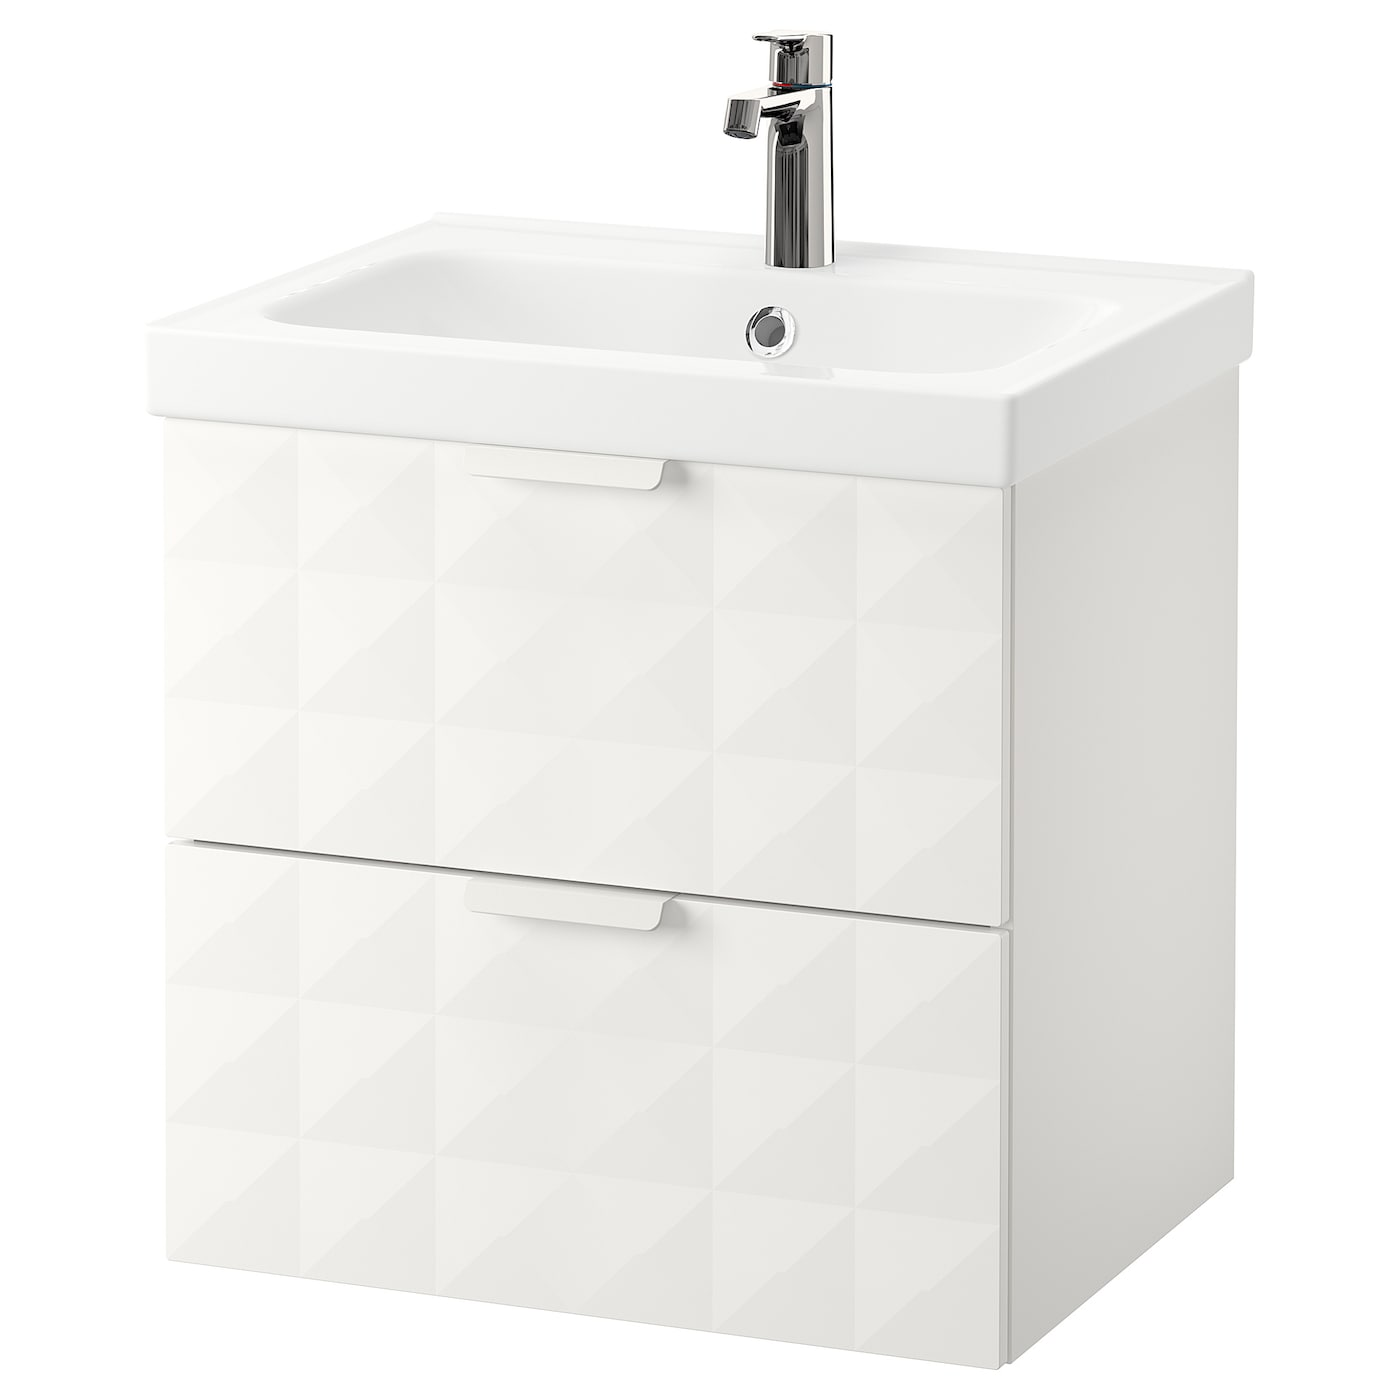 bathroom sink drawers odensvik godmorgon wash stand with 2 drawers resj 246 n white 11328